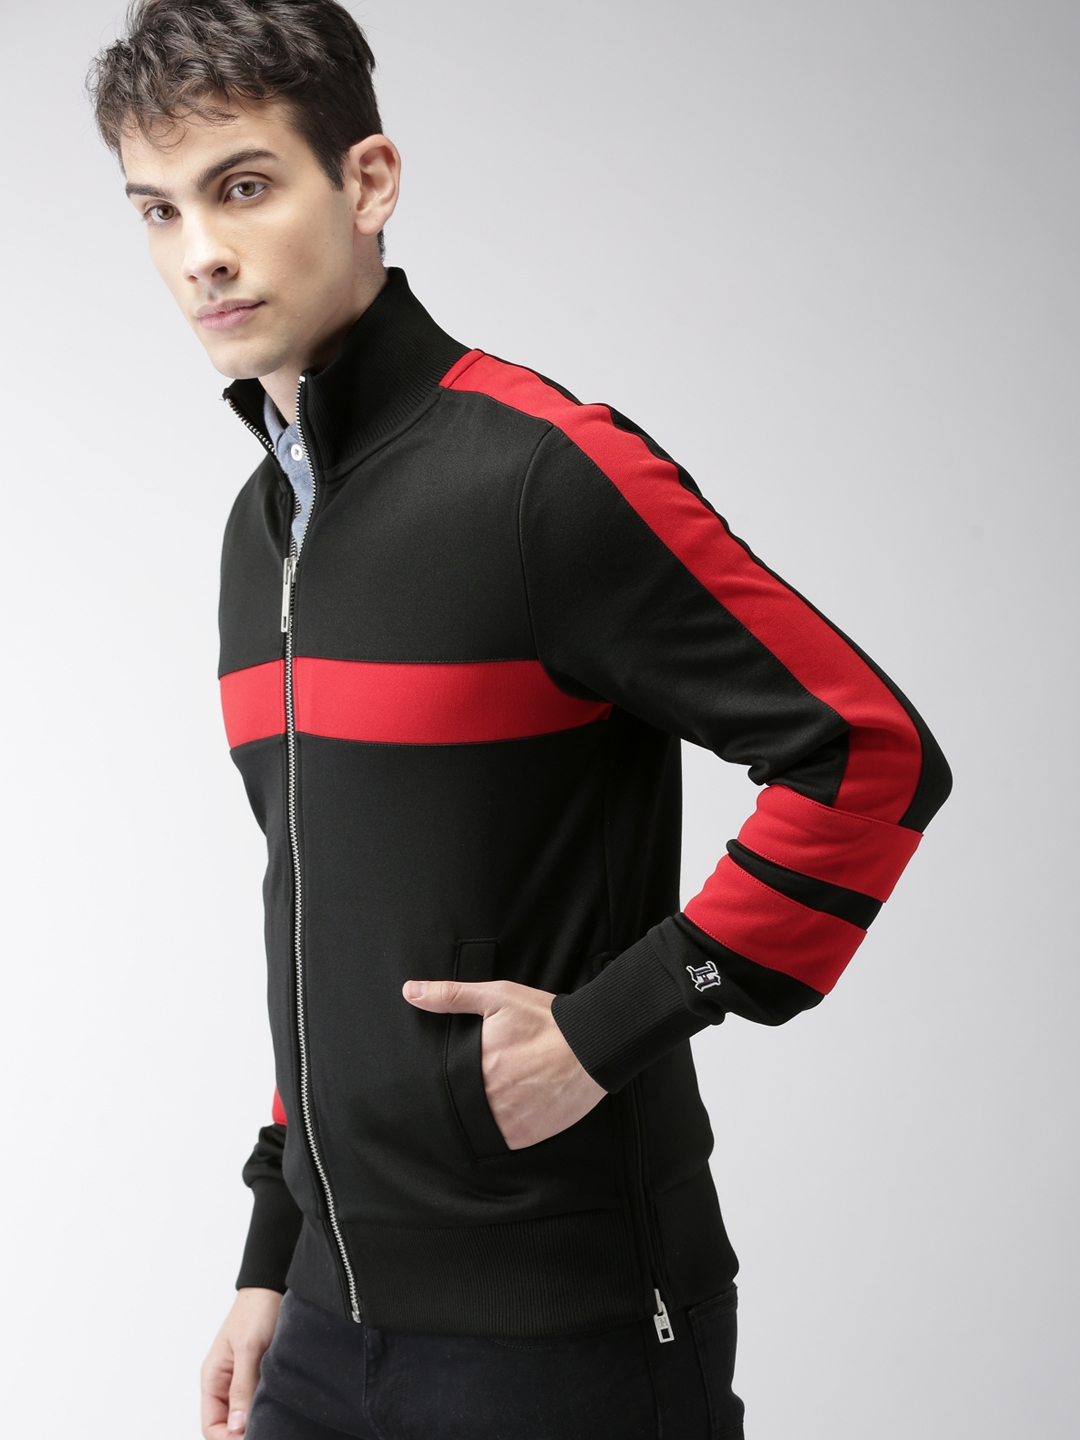 d19703f3aa2766 Buy Tommy Hilfiger LEWIS HAMILTON Men Black Track Jacket - Jackets ...